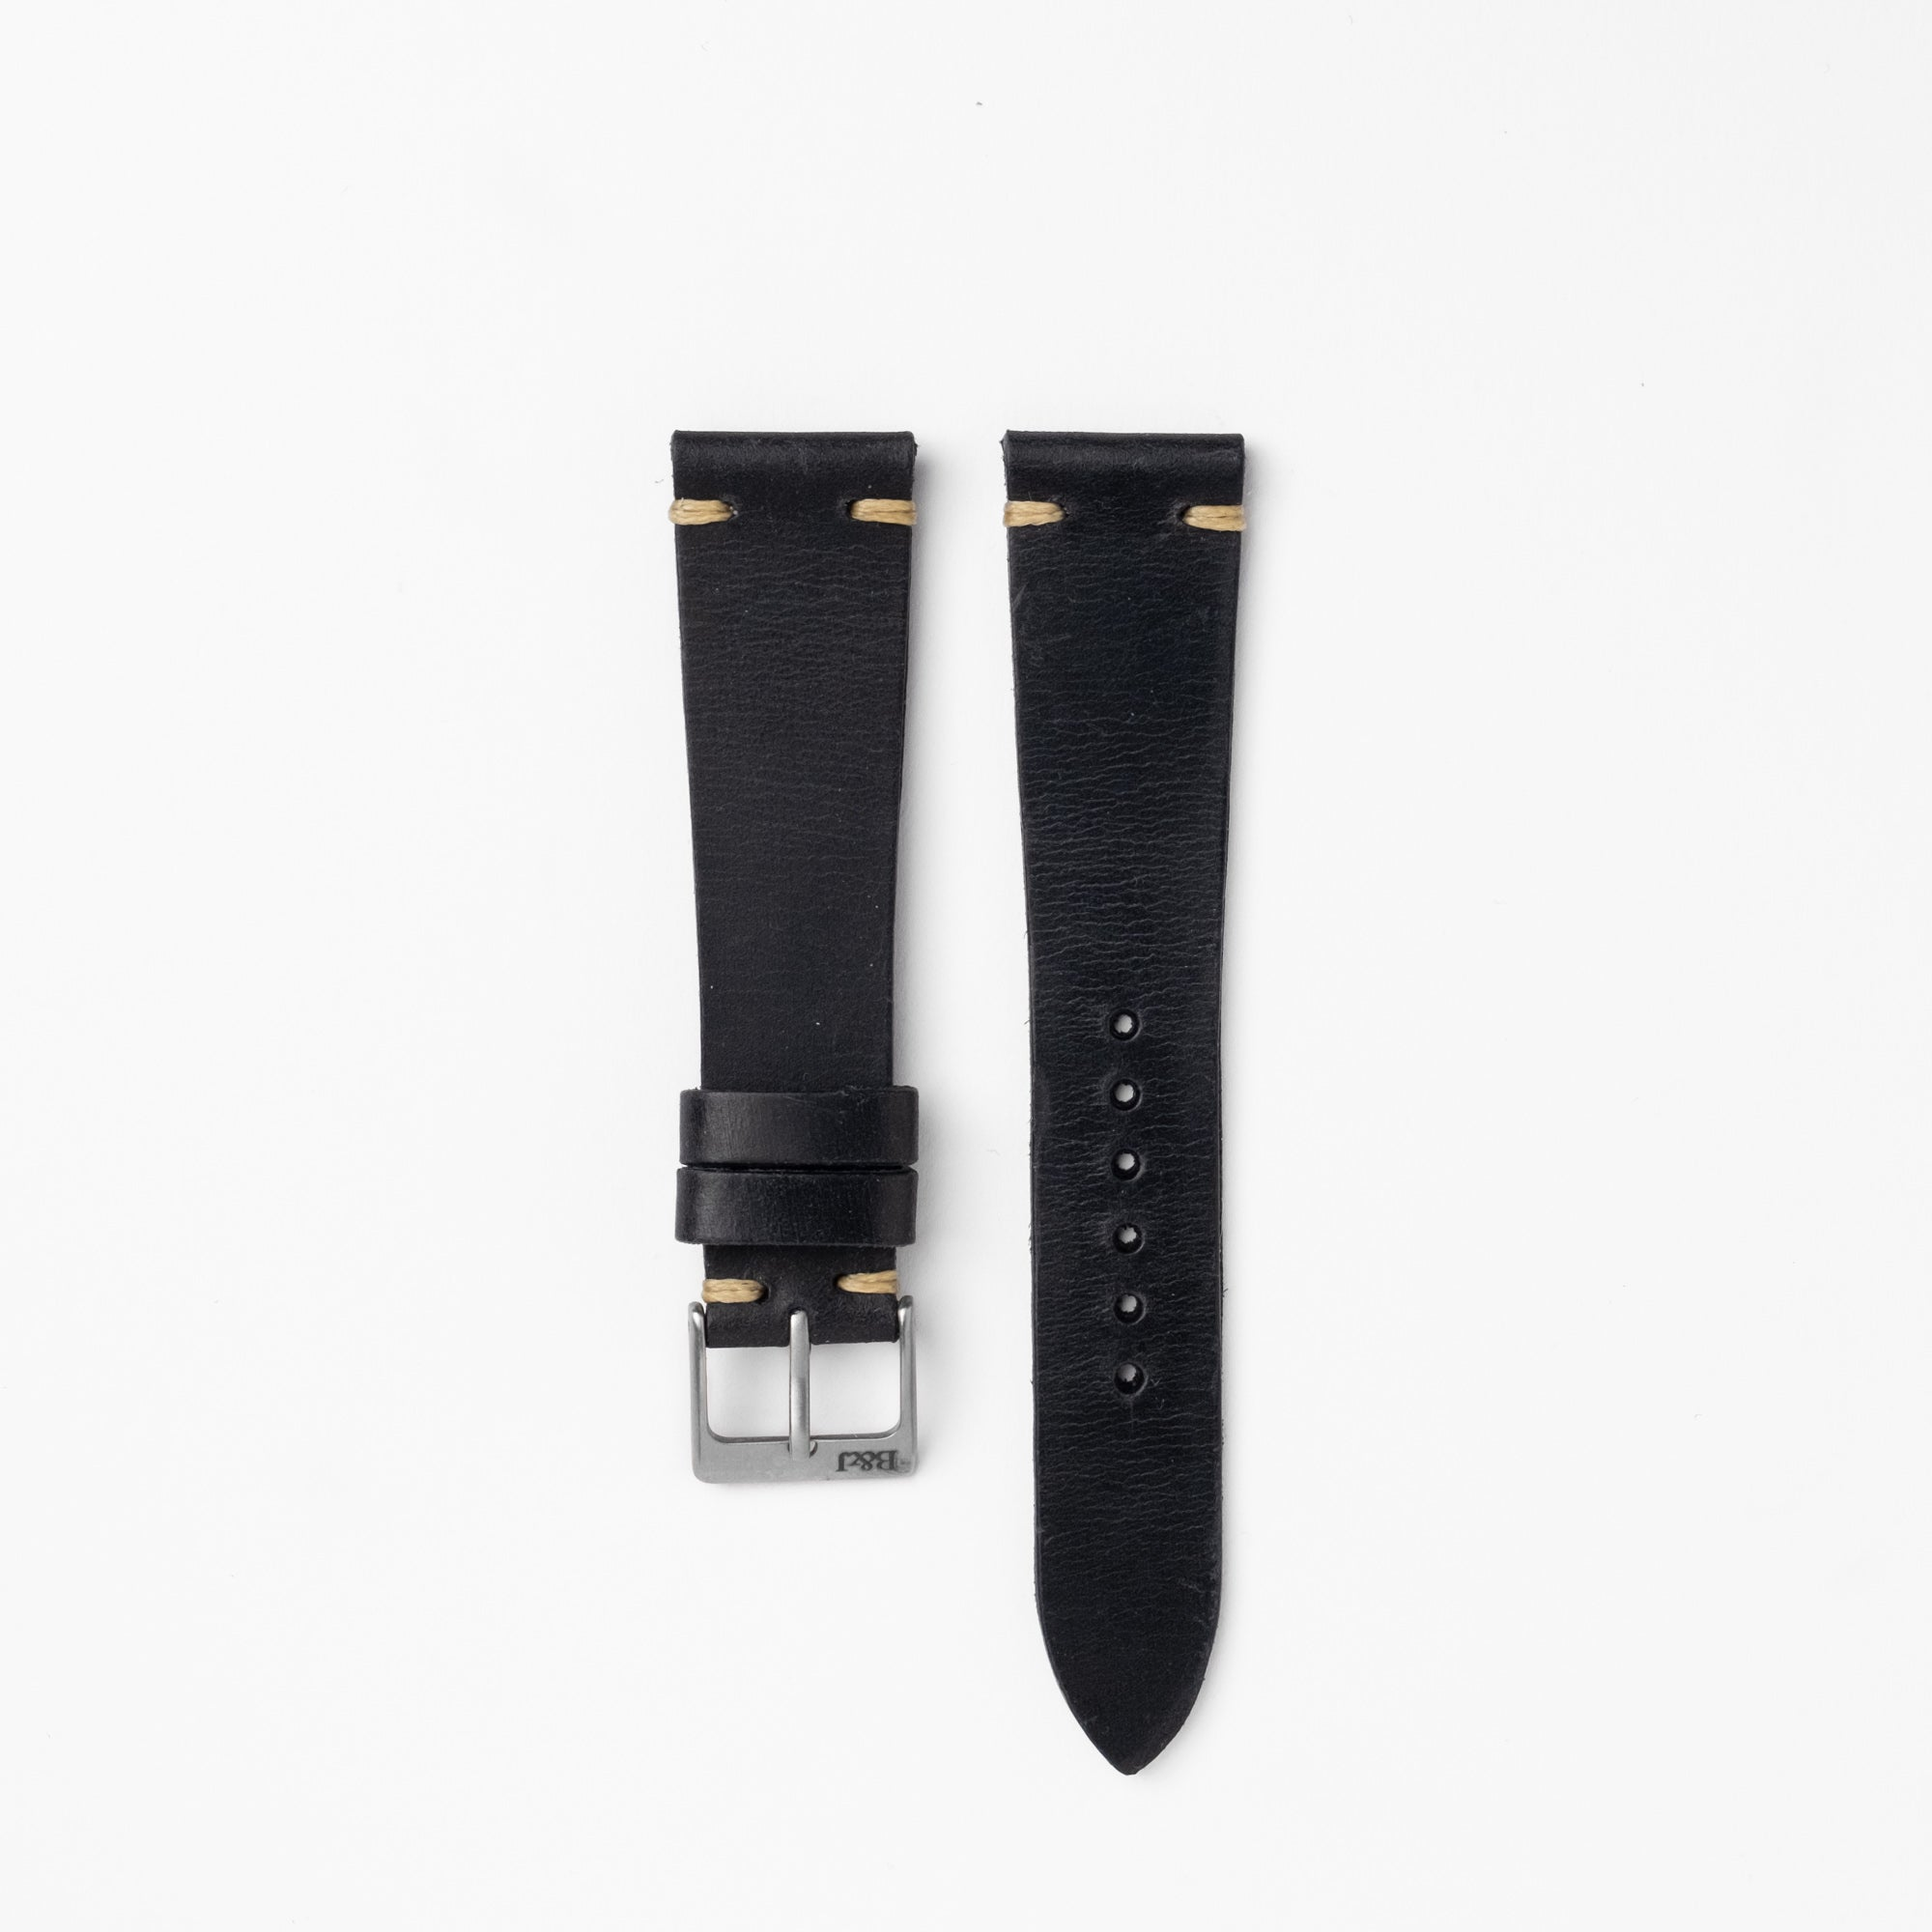 Americano - Vintage Style Leather Strap